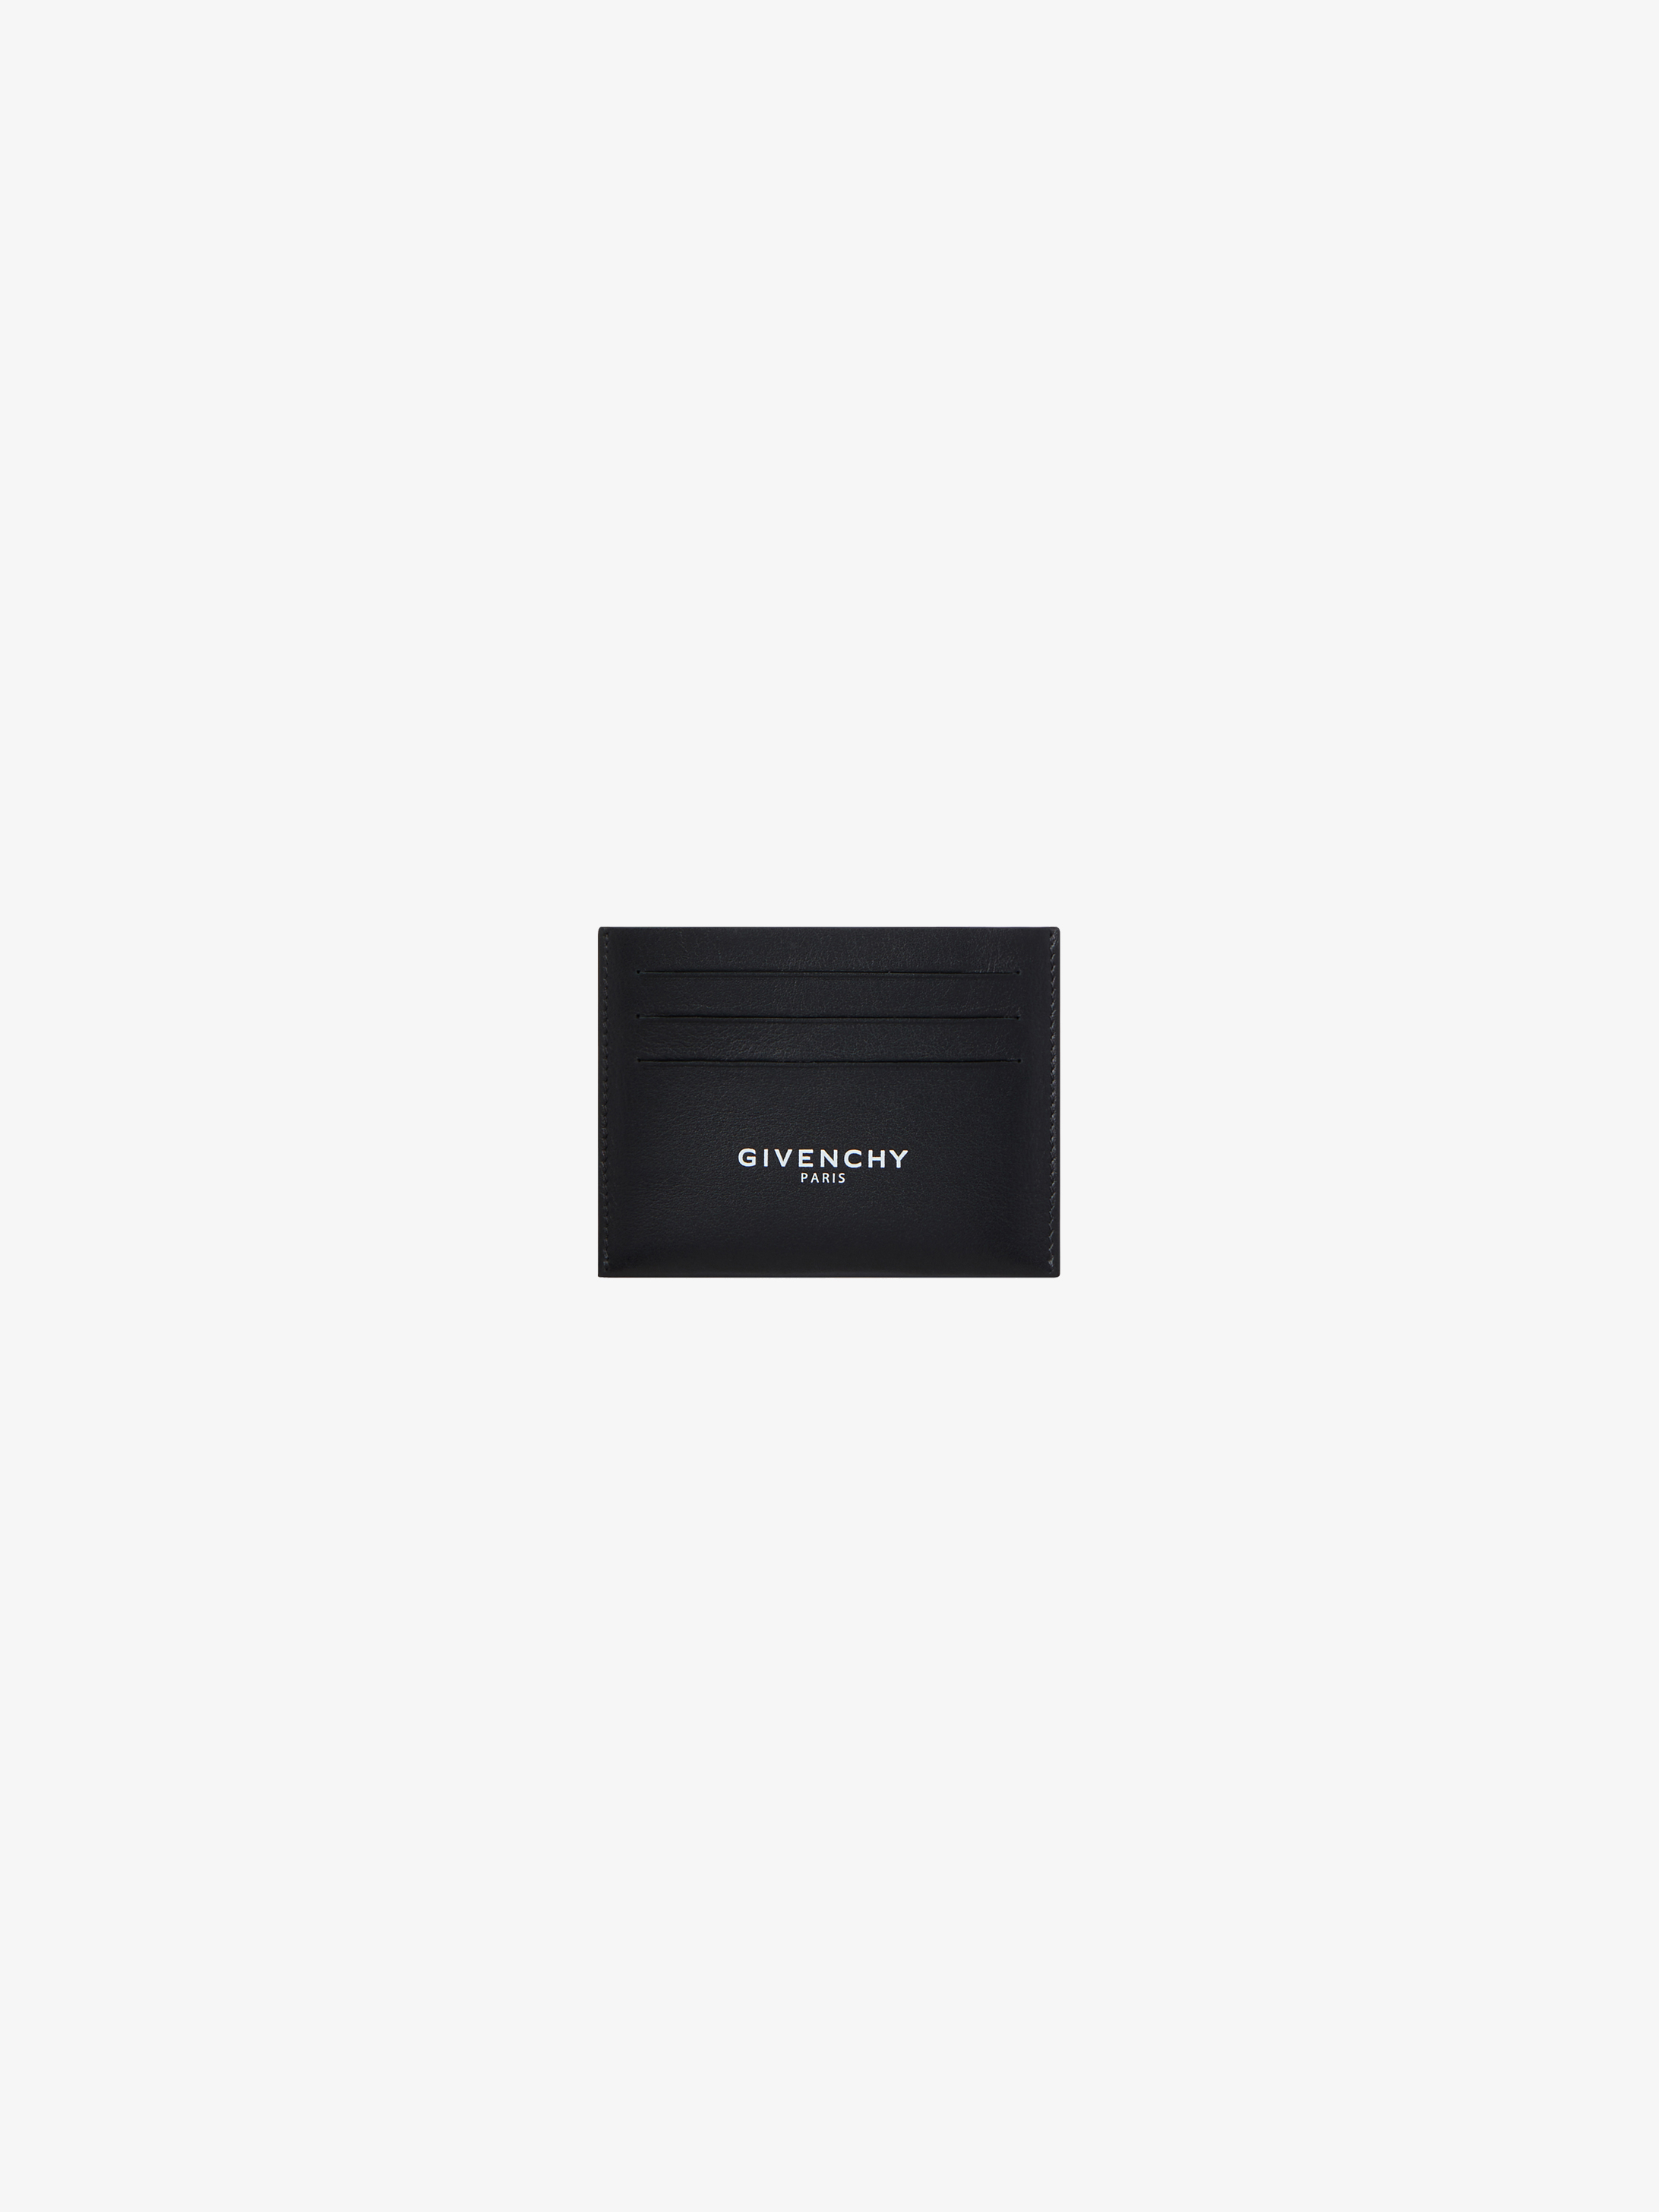 GIVENCHY PARIS card holder in leather